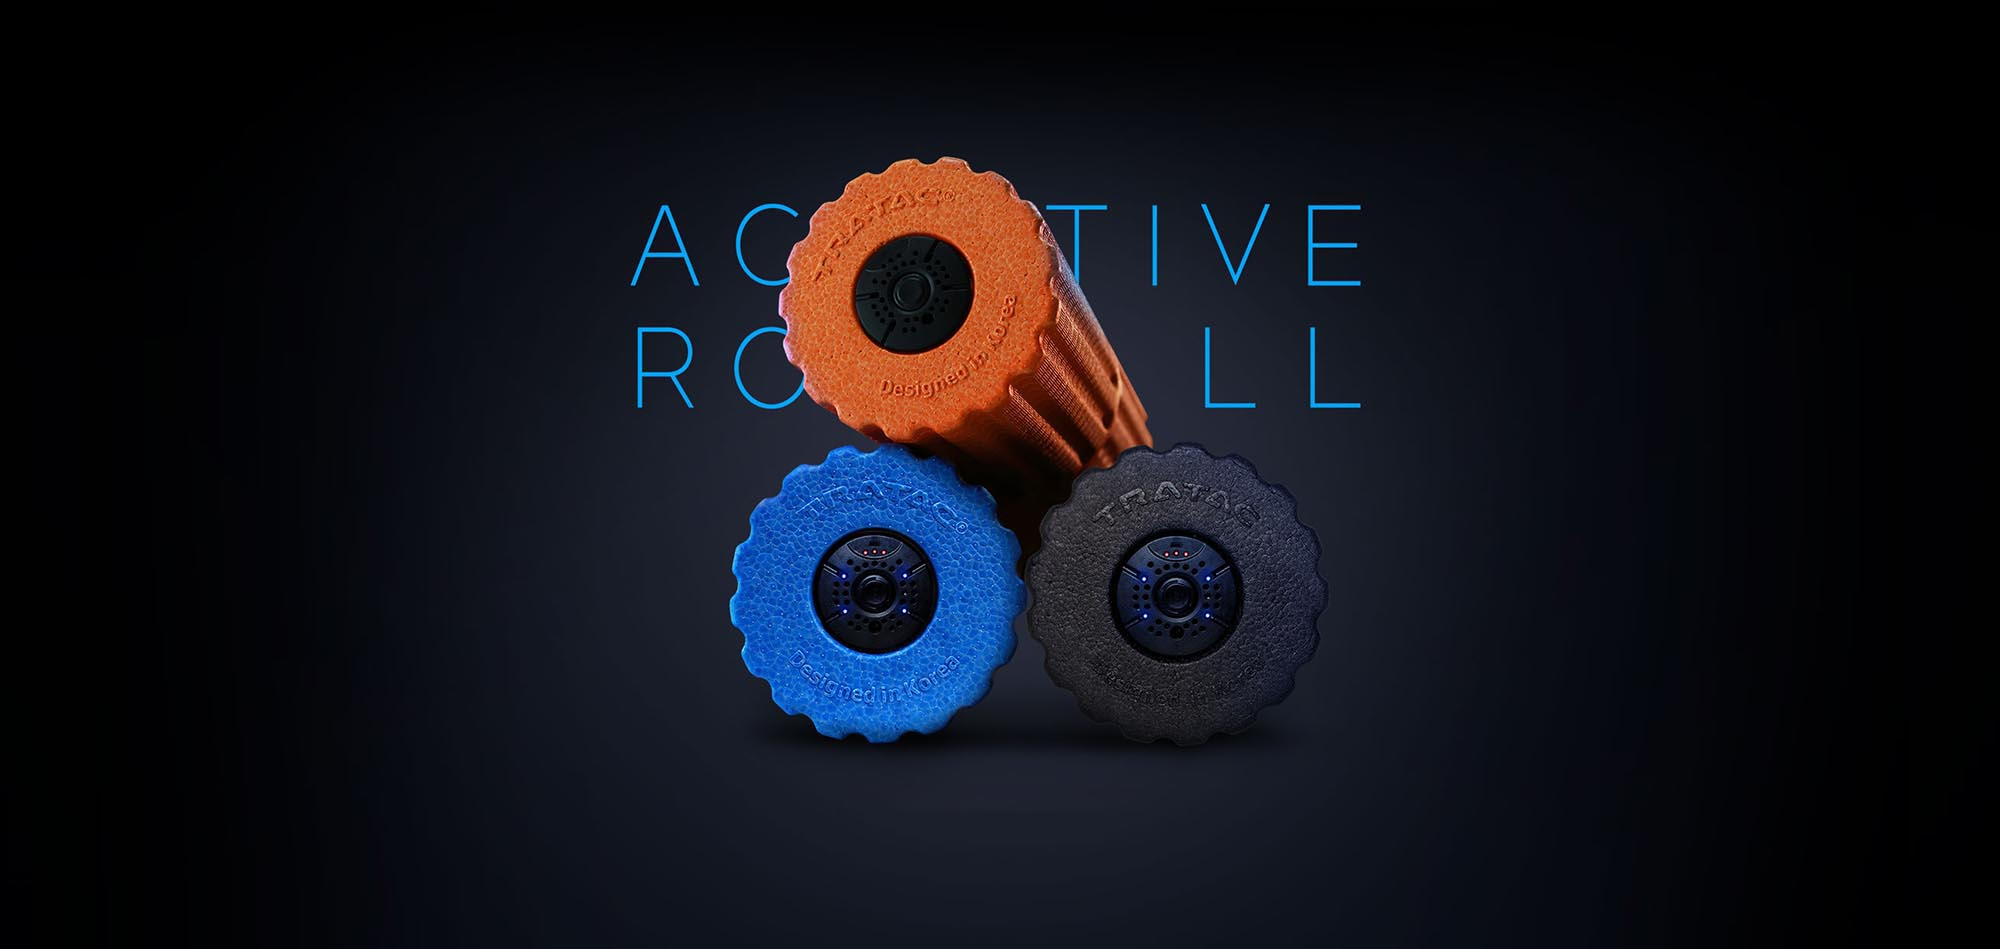 tratac-foam-roller-active-roll